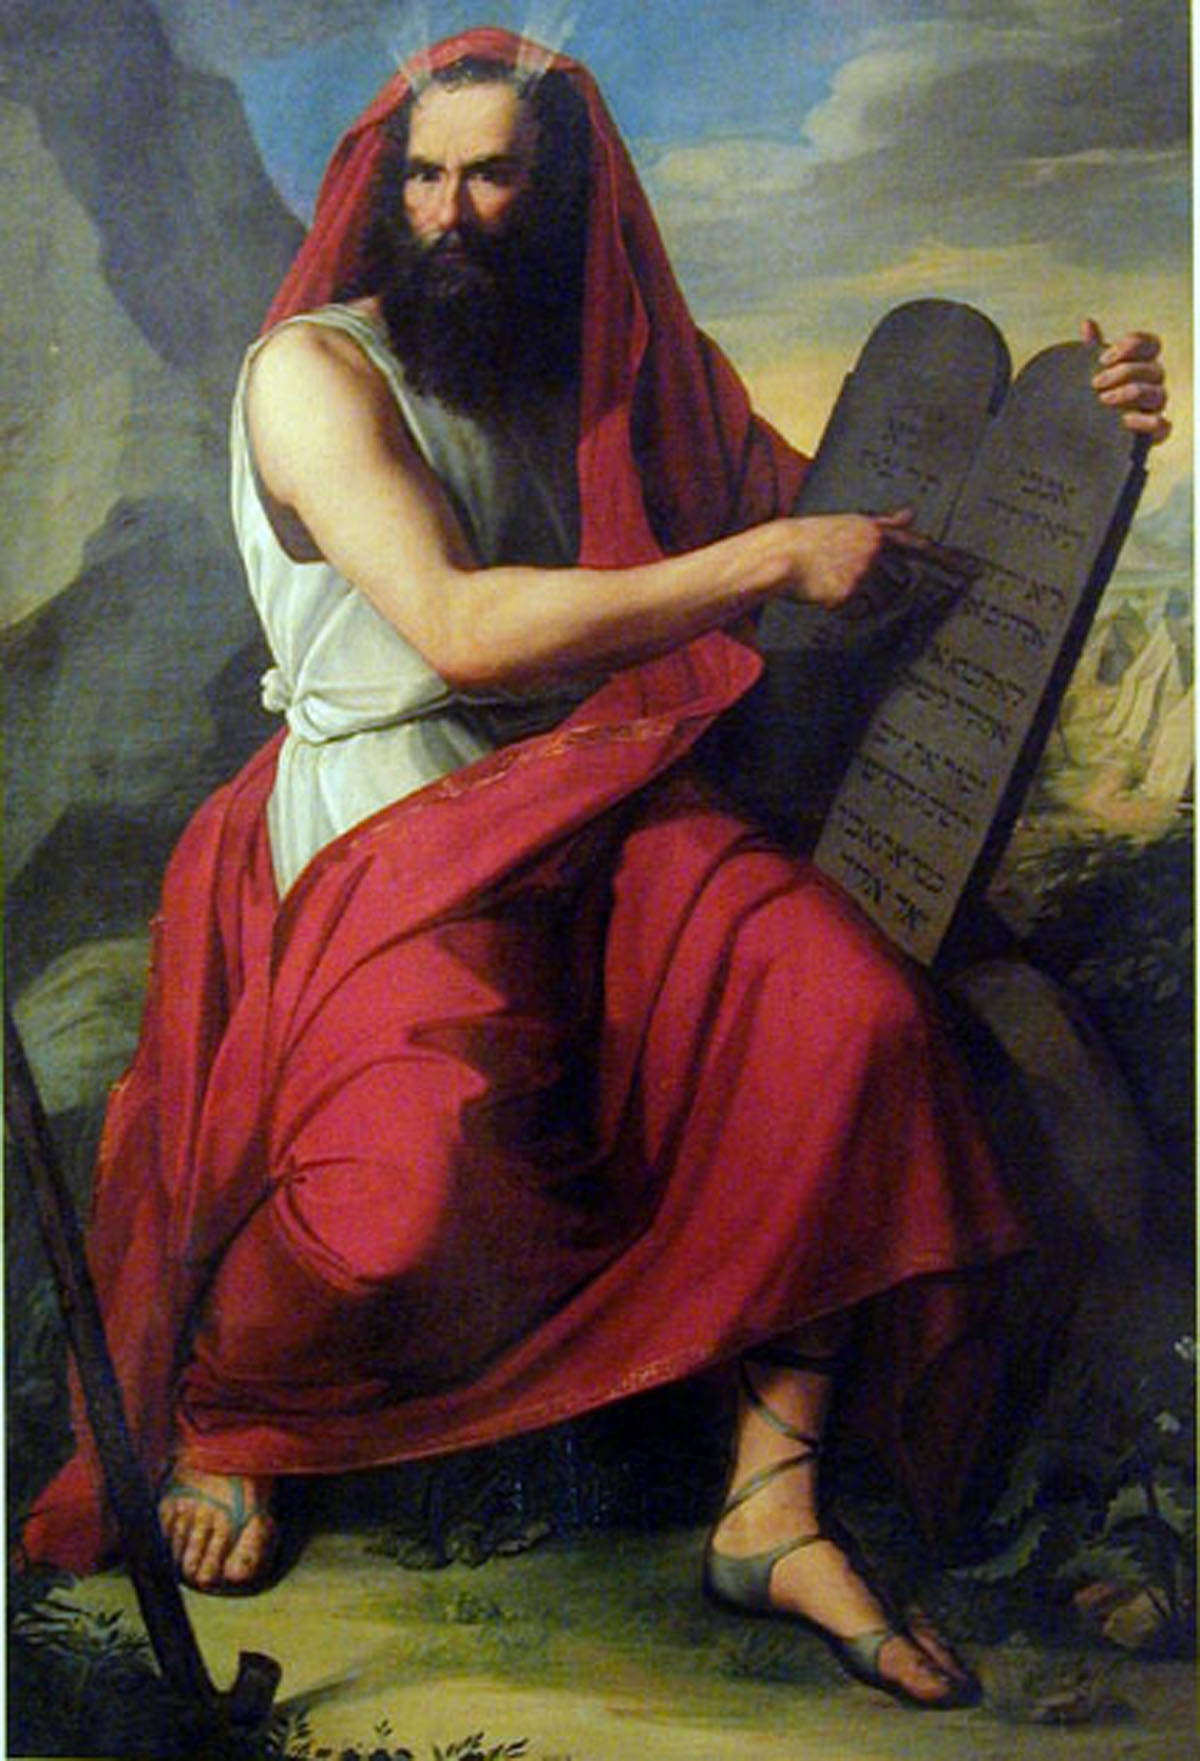 Freemasonry and Hasidic Judaism is hidden within art with Moses and the tablets